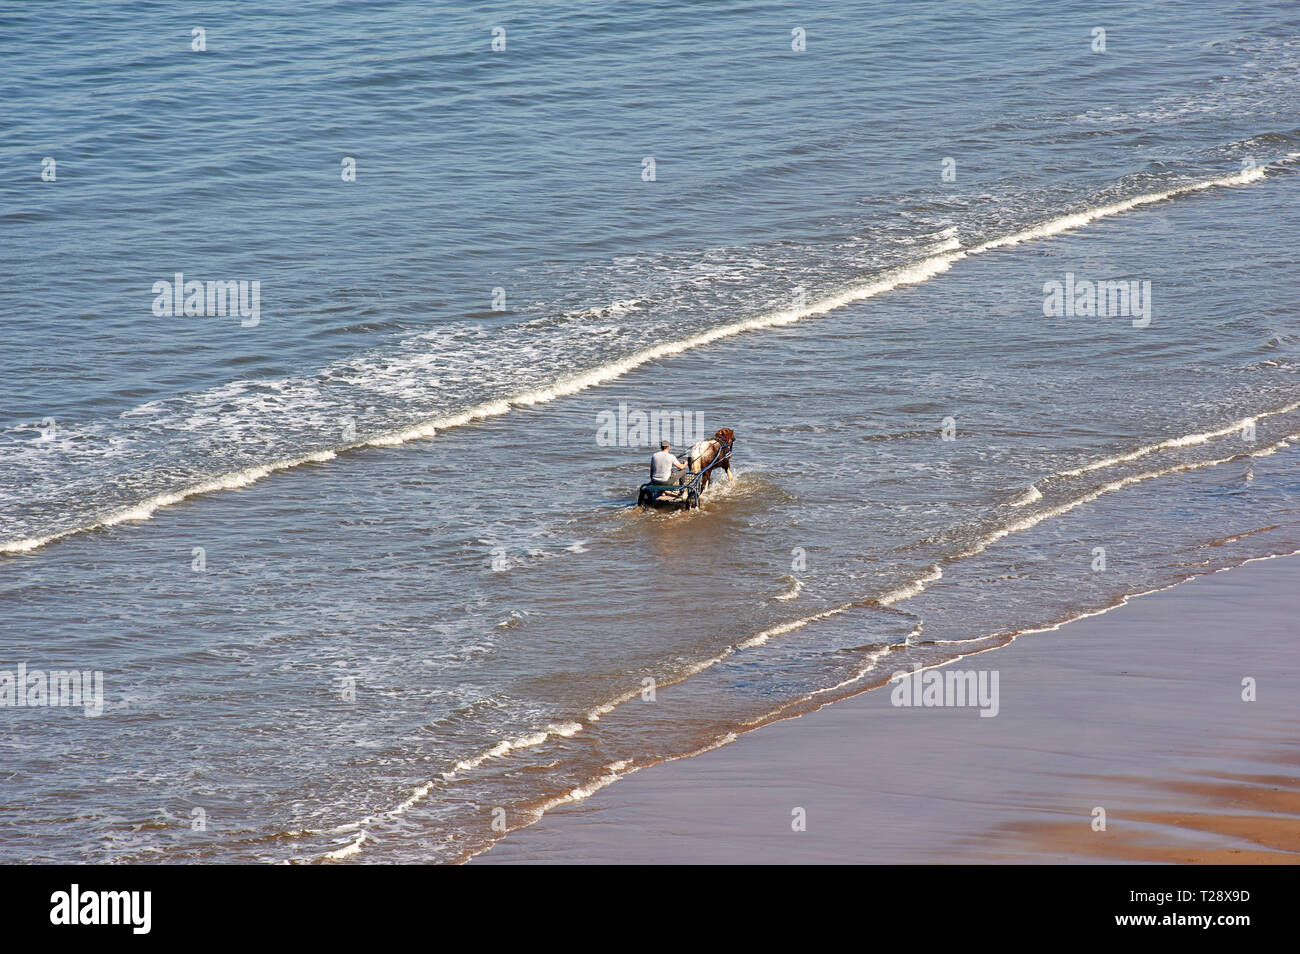 Man with a pony and trap in the surf at Whitby, Noth Yorkshire, UK, GB. - Stock Image